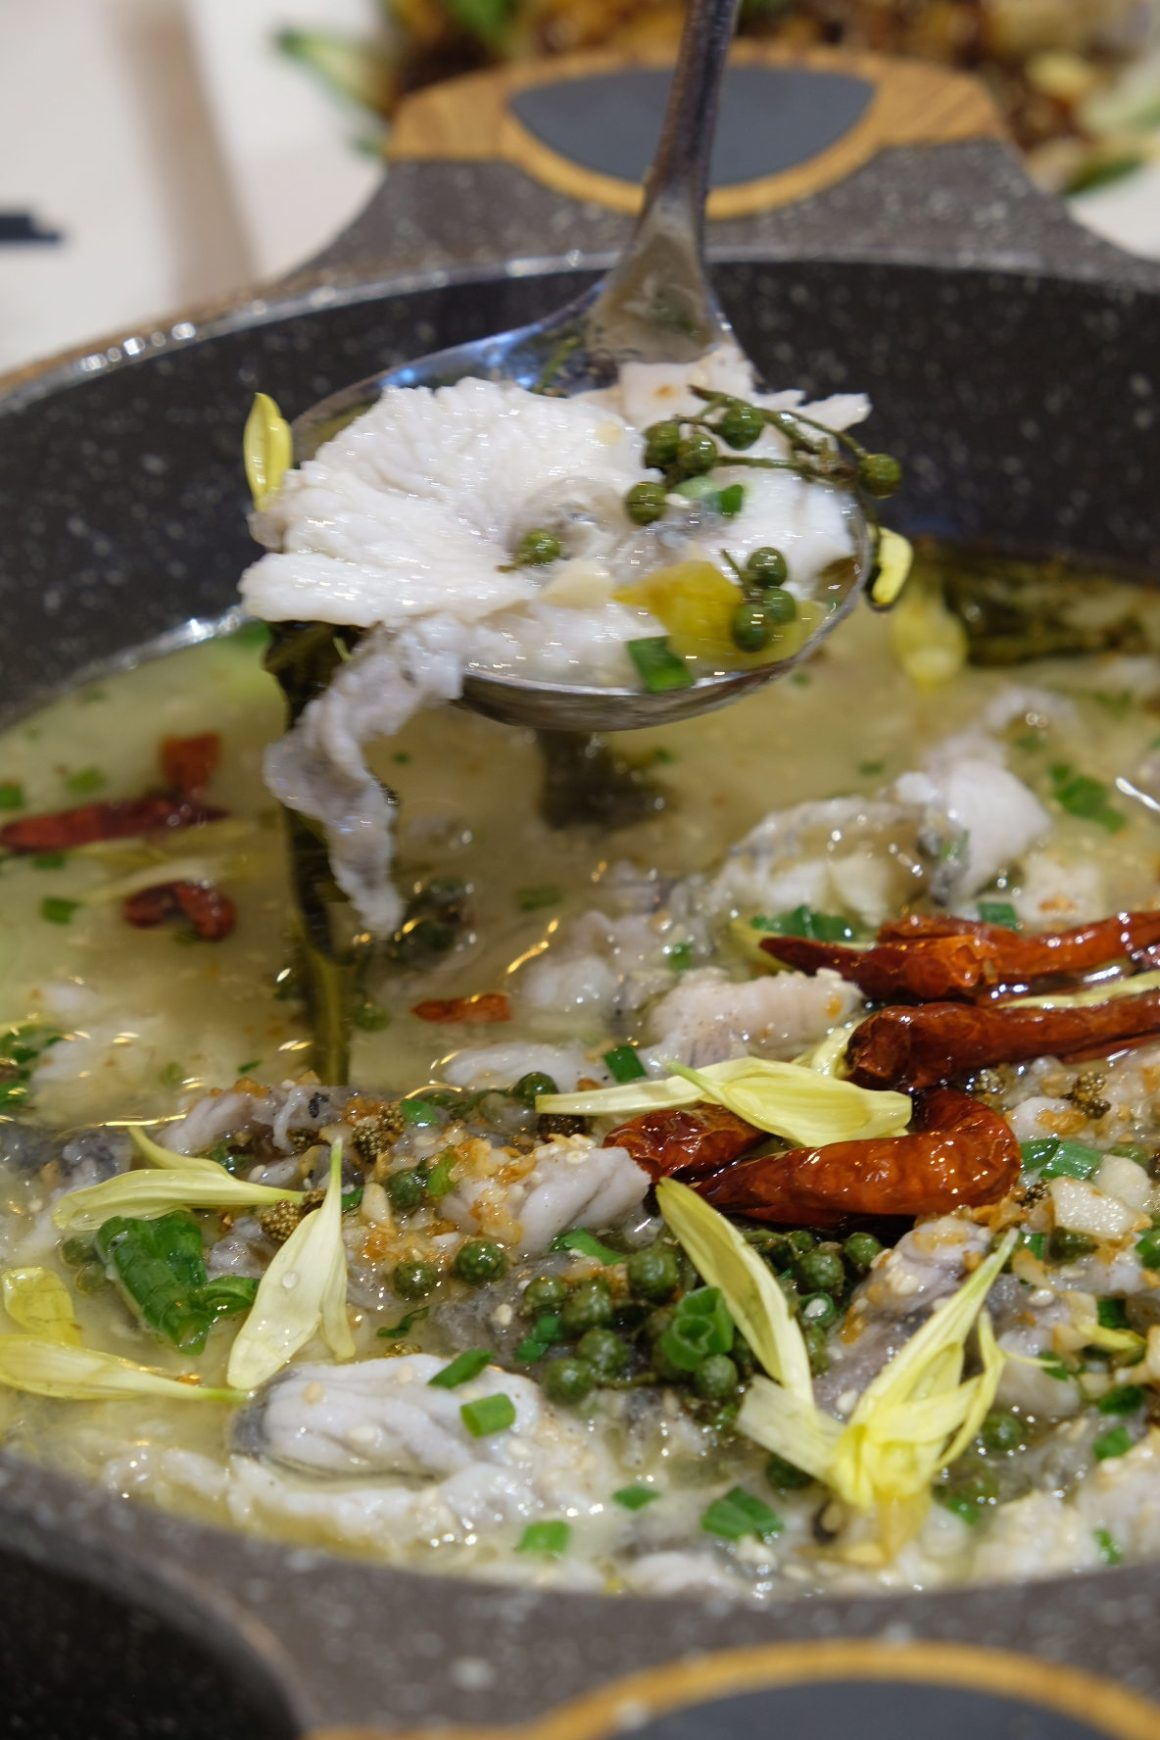 Qi Lai Feng, QQMuscleFish Hotpot, At Chinatown Point - Sauerkraut Fish Pot 精品酸菜鱼锅 ($38.80 for small pot)